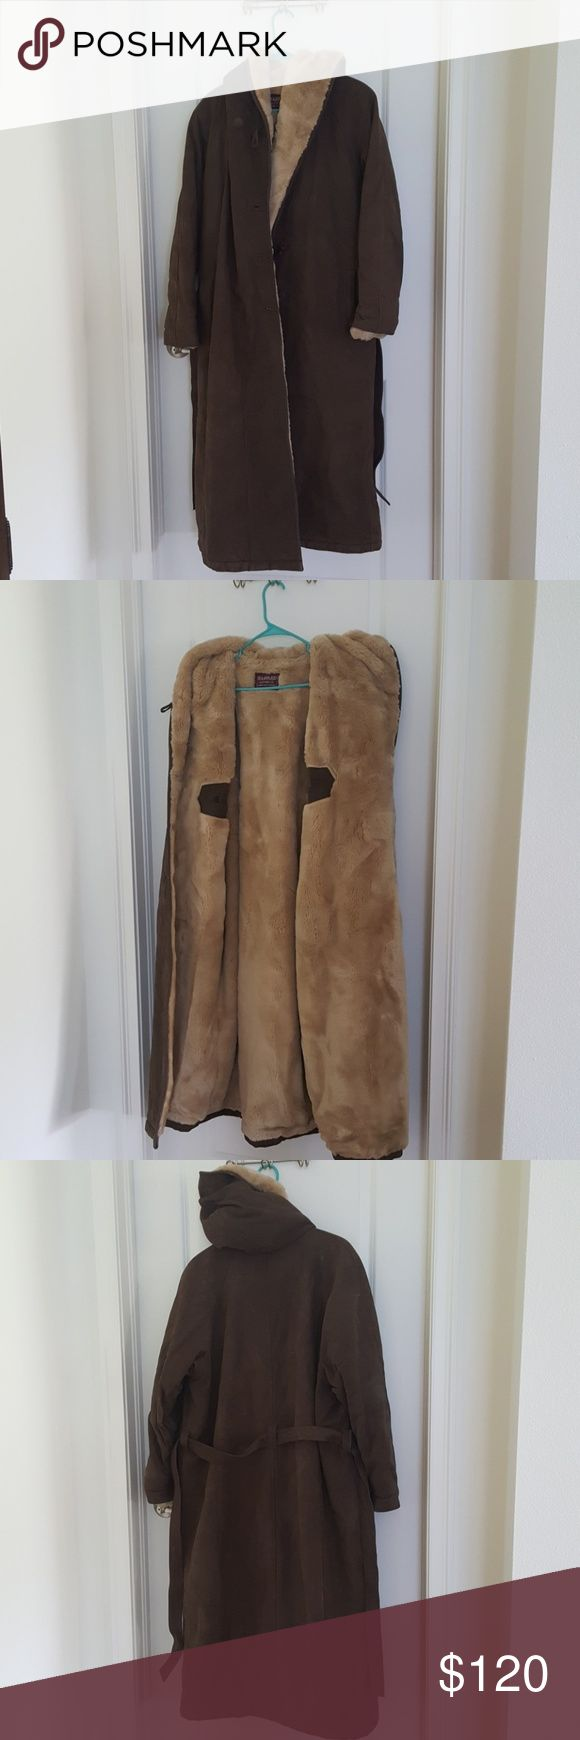 Ladies Winter Coat Custom made for New England winters, Leather out, soft blanket inside, 3/4 length, heavy, durable Jackets & Coats Trench Coats